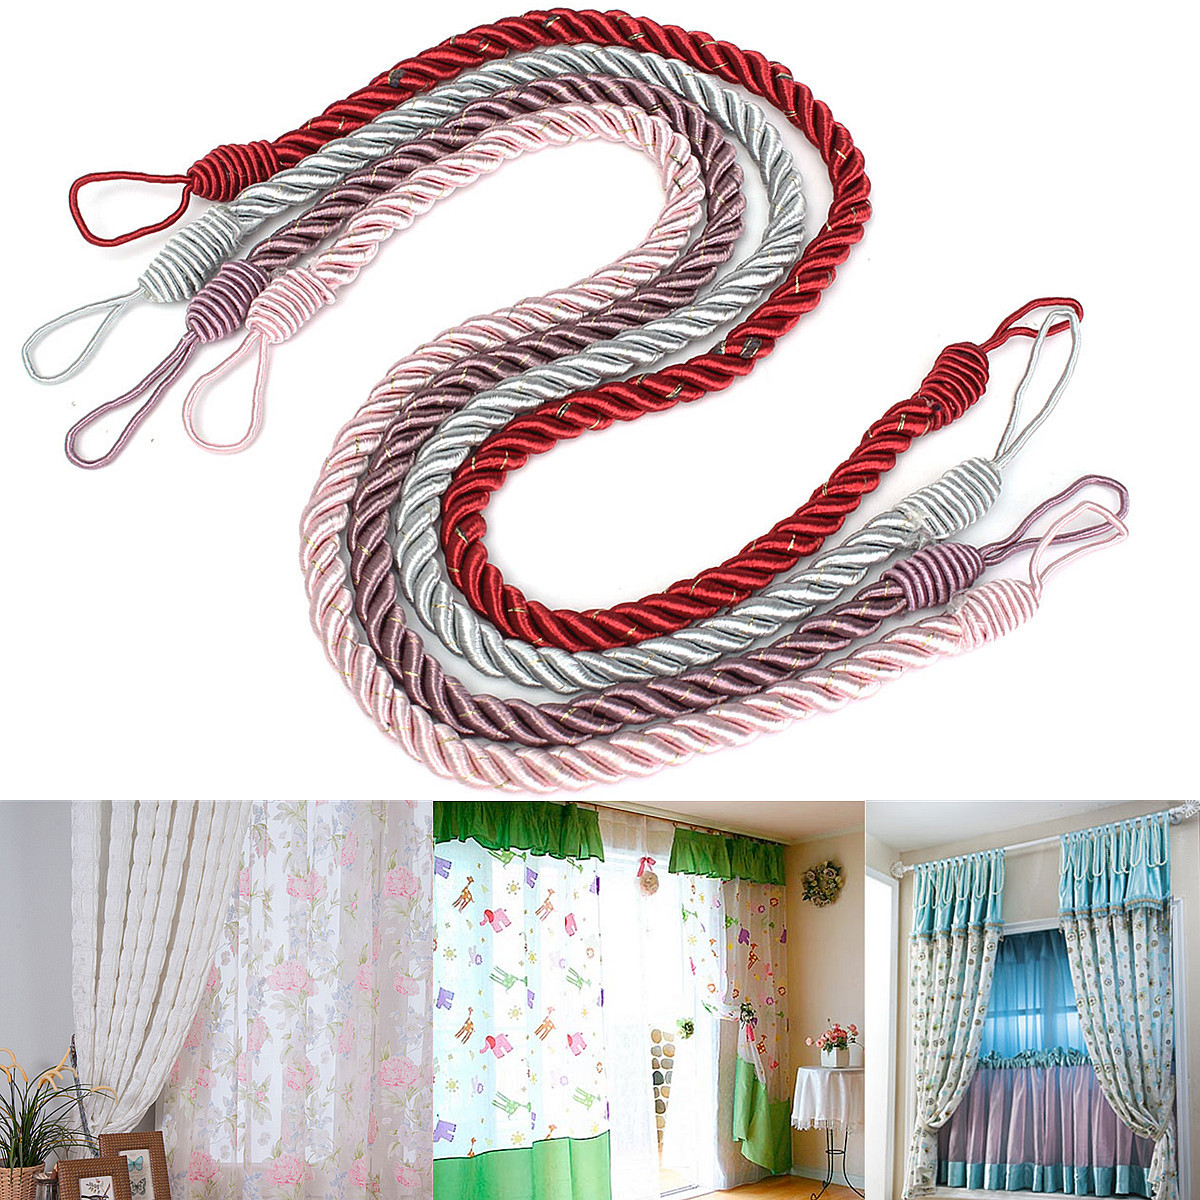 Rope Curtain Curtain Tassels Tying Rope Tie Back Handmade Curtain Cord Home Window Decor 4 Colors